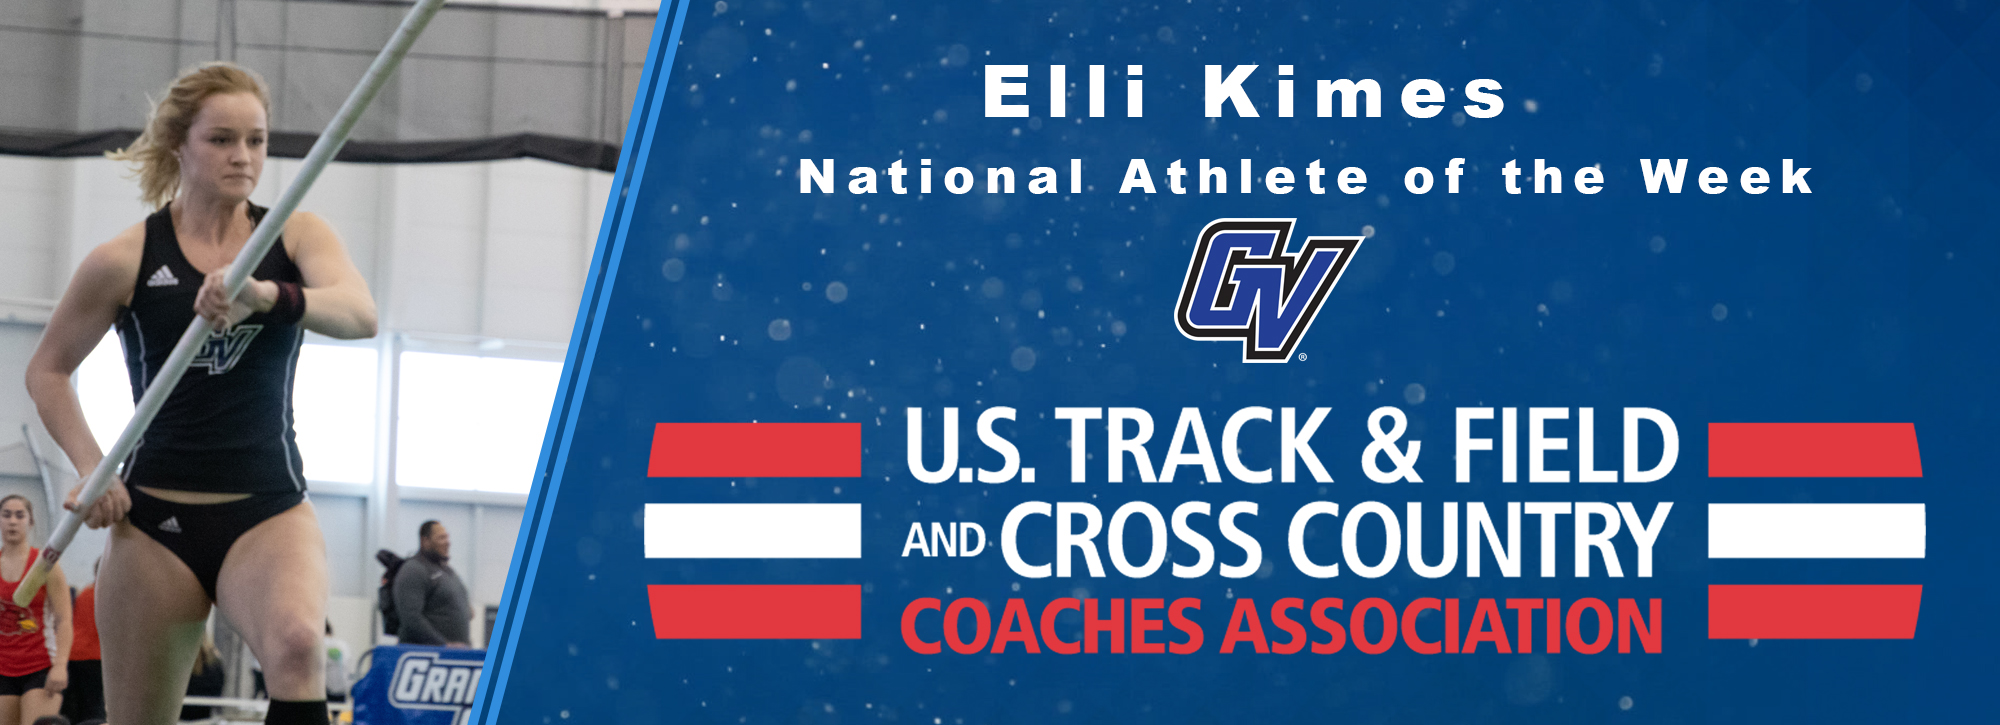 GVSU's Kimes is named USTFCCCA National Athlete of the Week